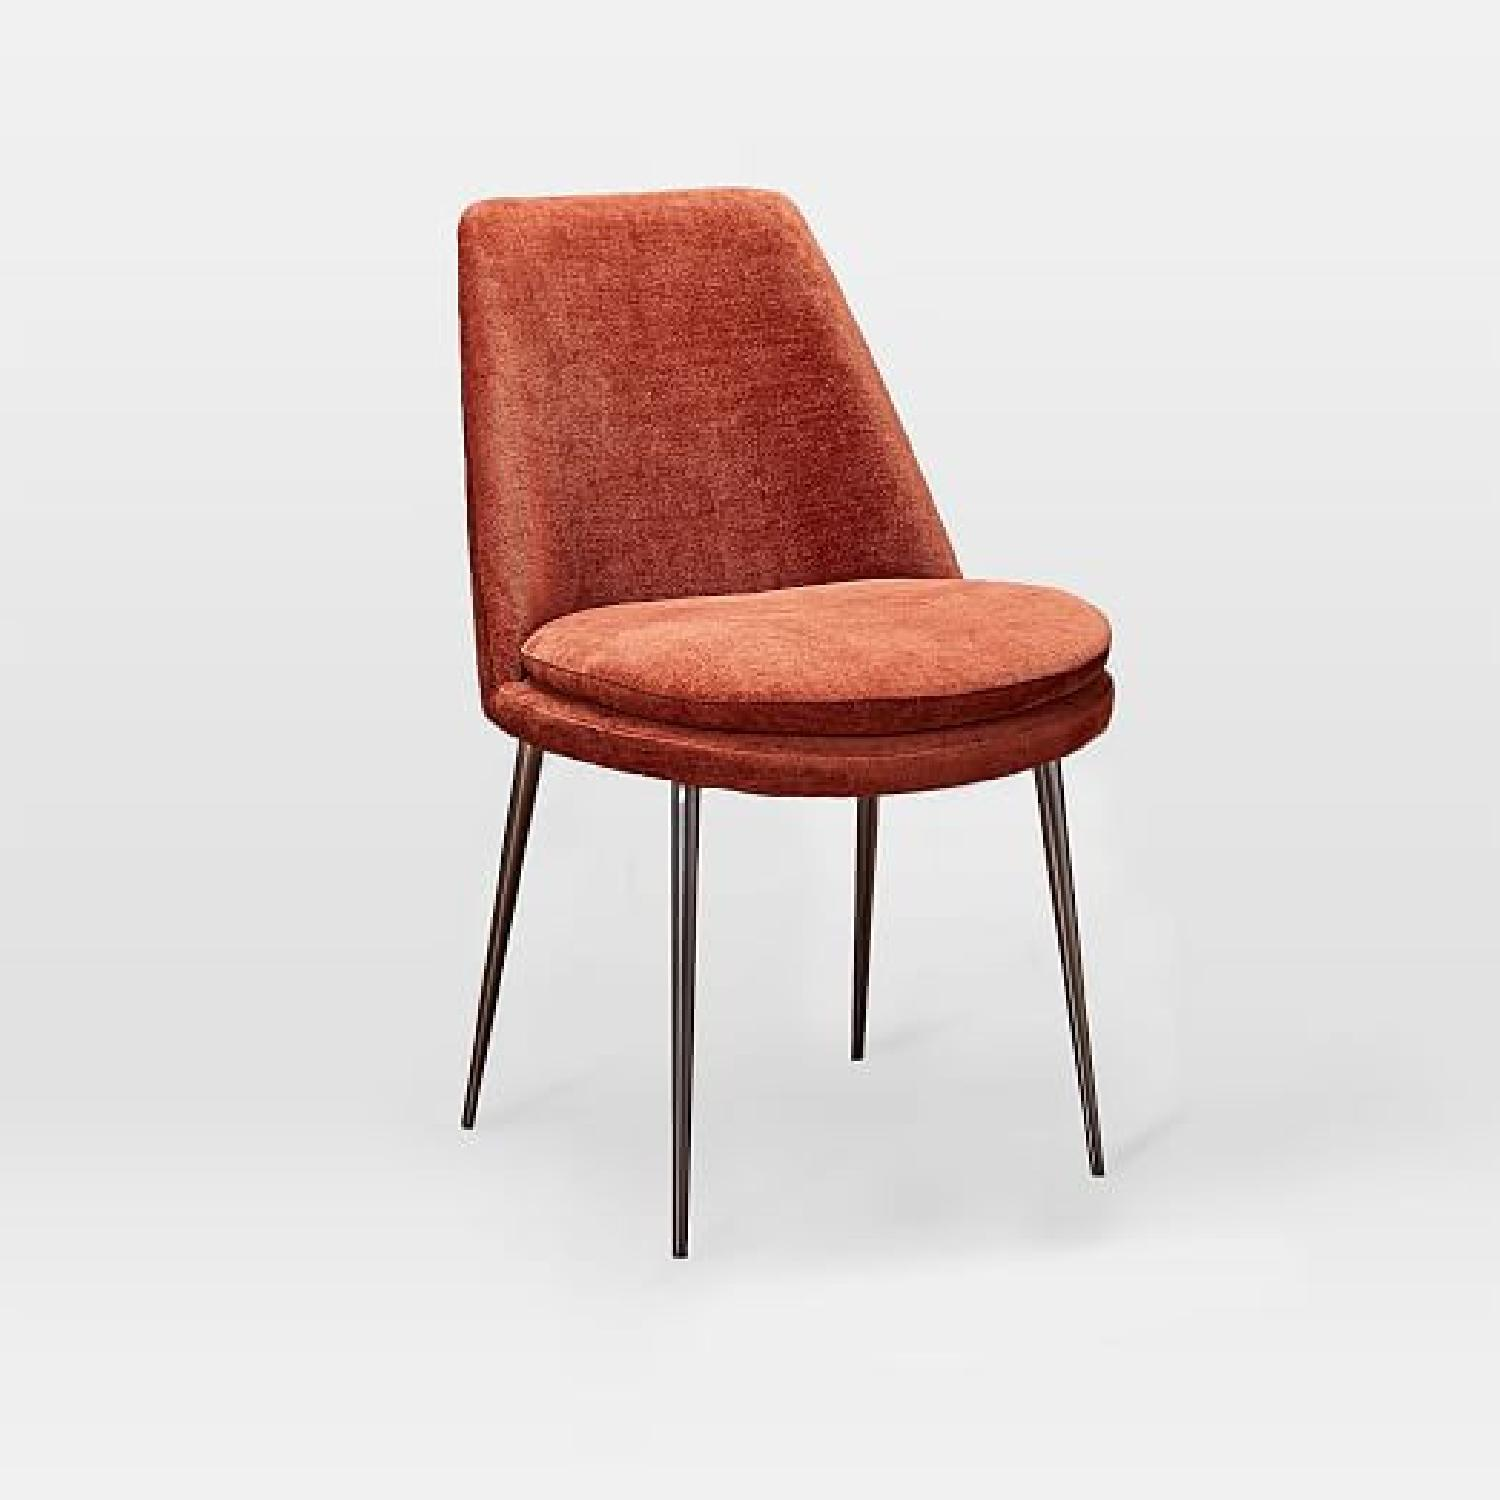 West Elm Distressed Velvet Dining Chairs - image-5